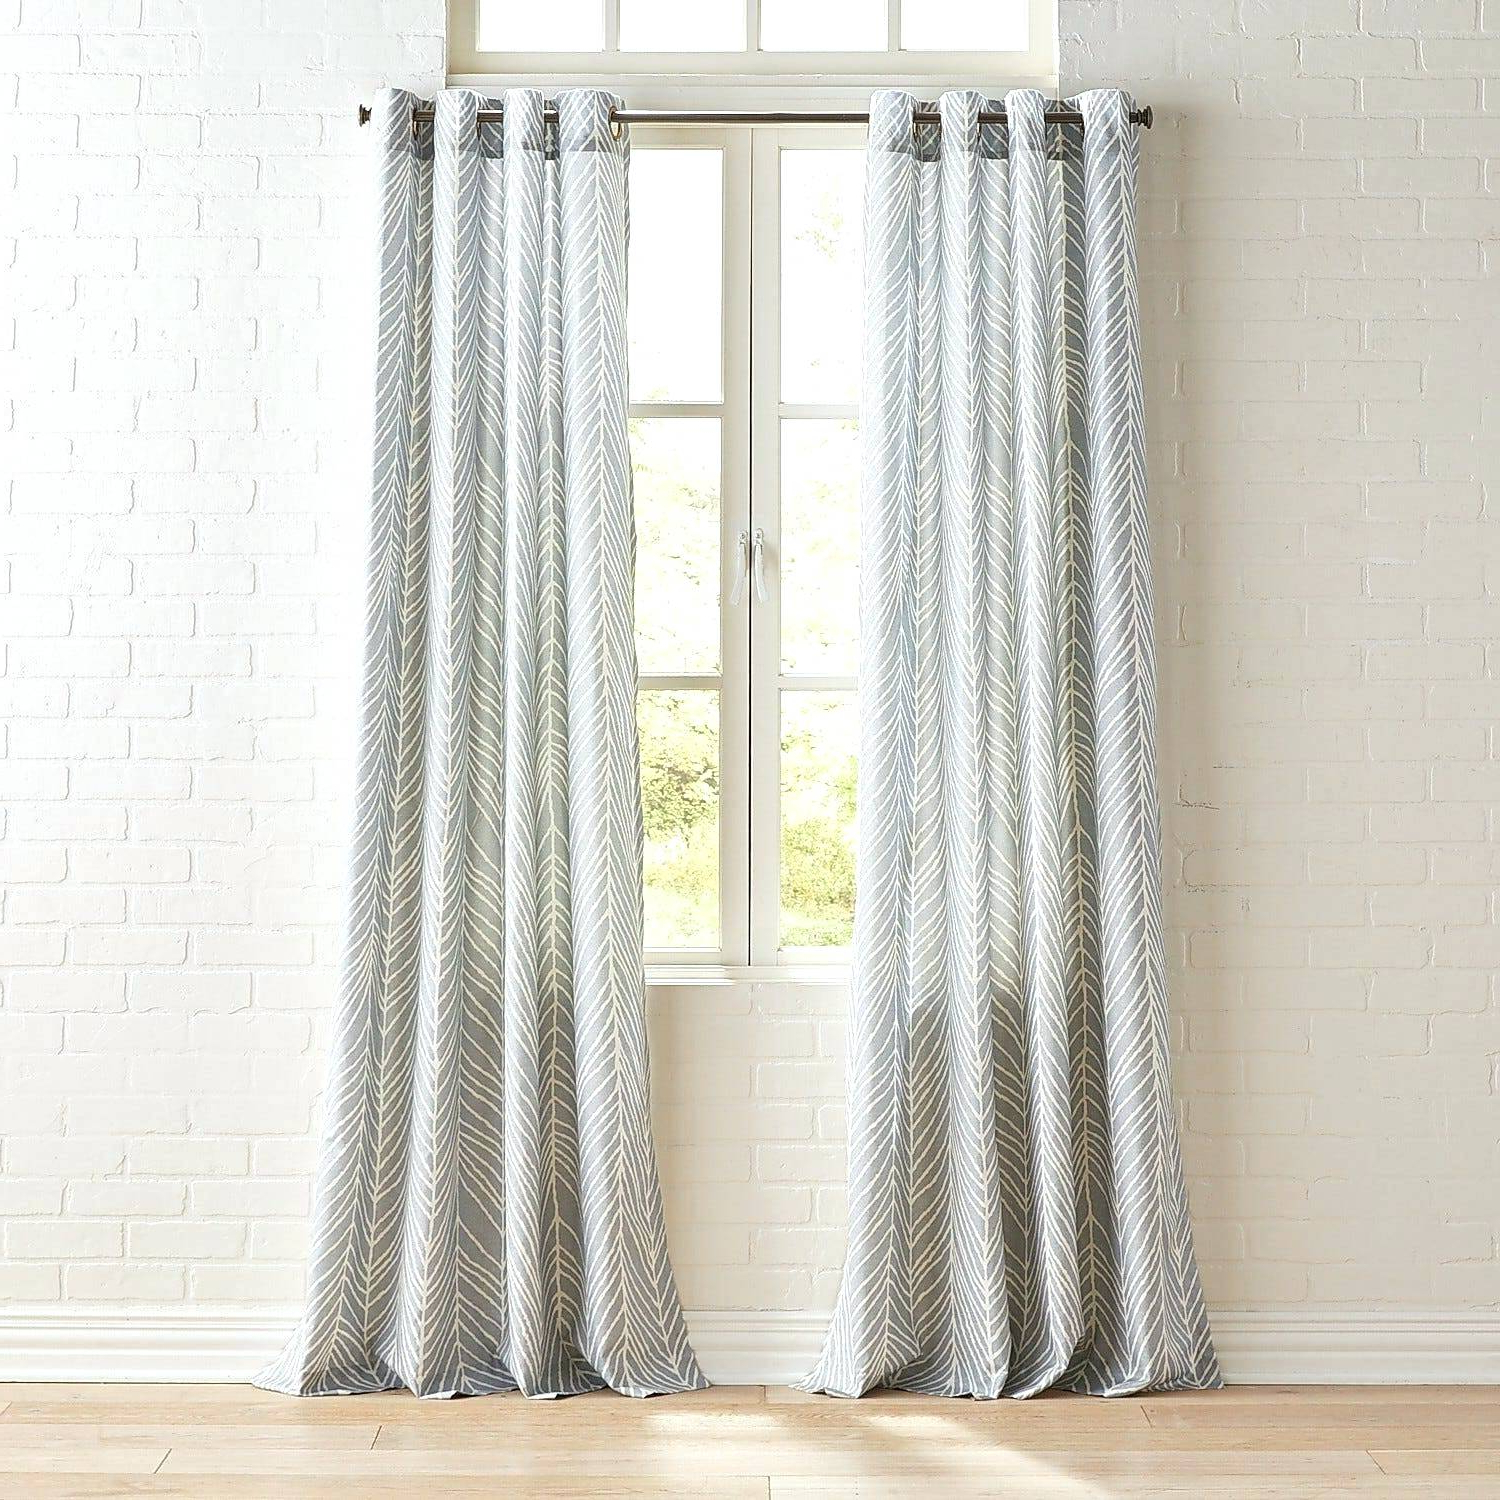 Copper Grove Speedwell Grommet Window Curtain Panels For Most Current Gray Grommet Curtains – Sparkchess (View 3 of 20)